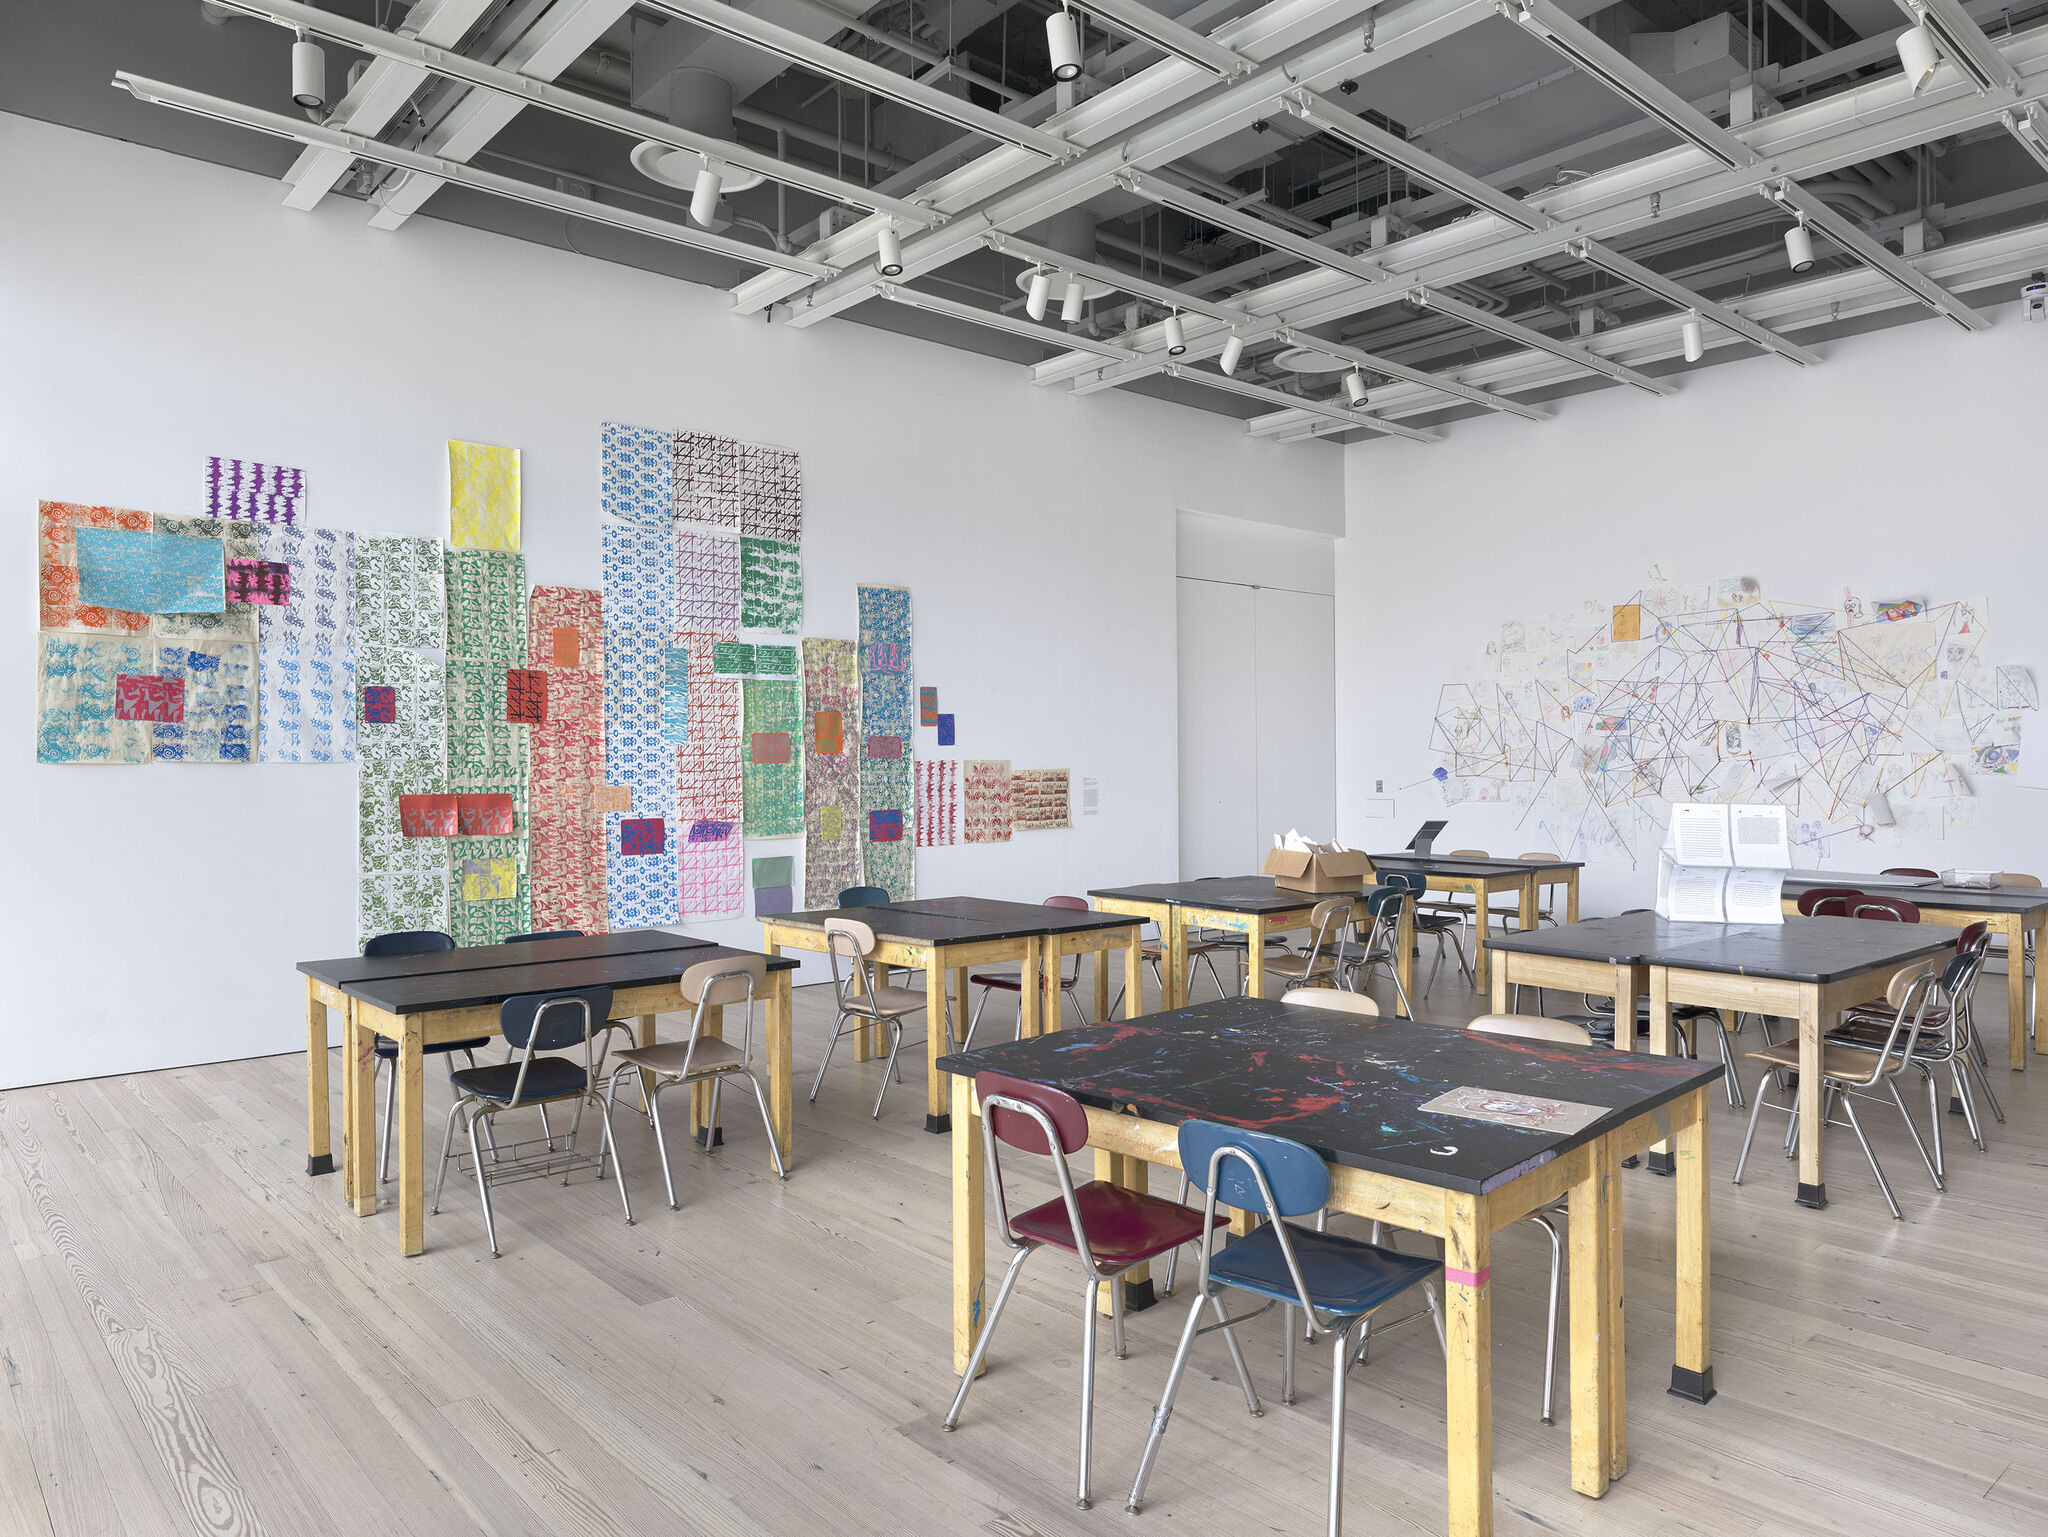 An installation view of a classroom with art.